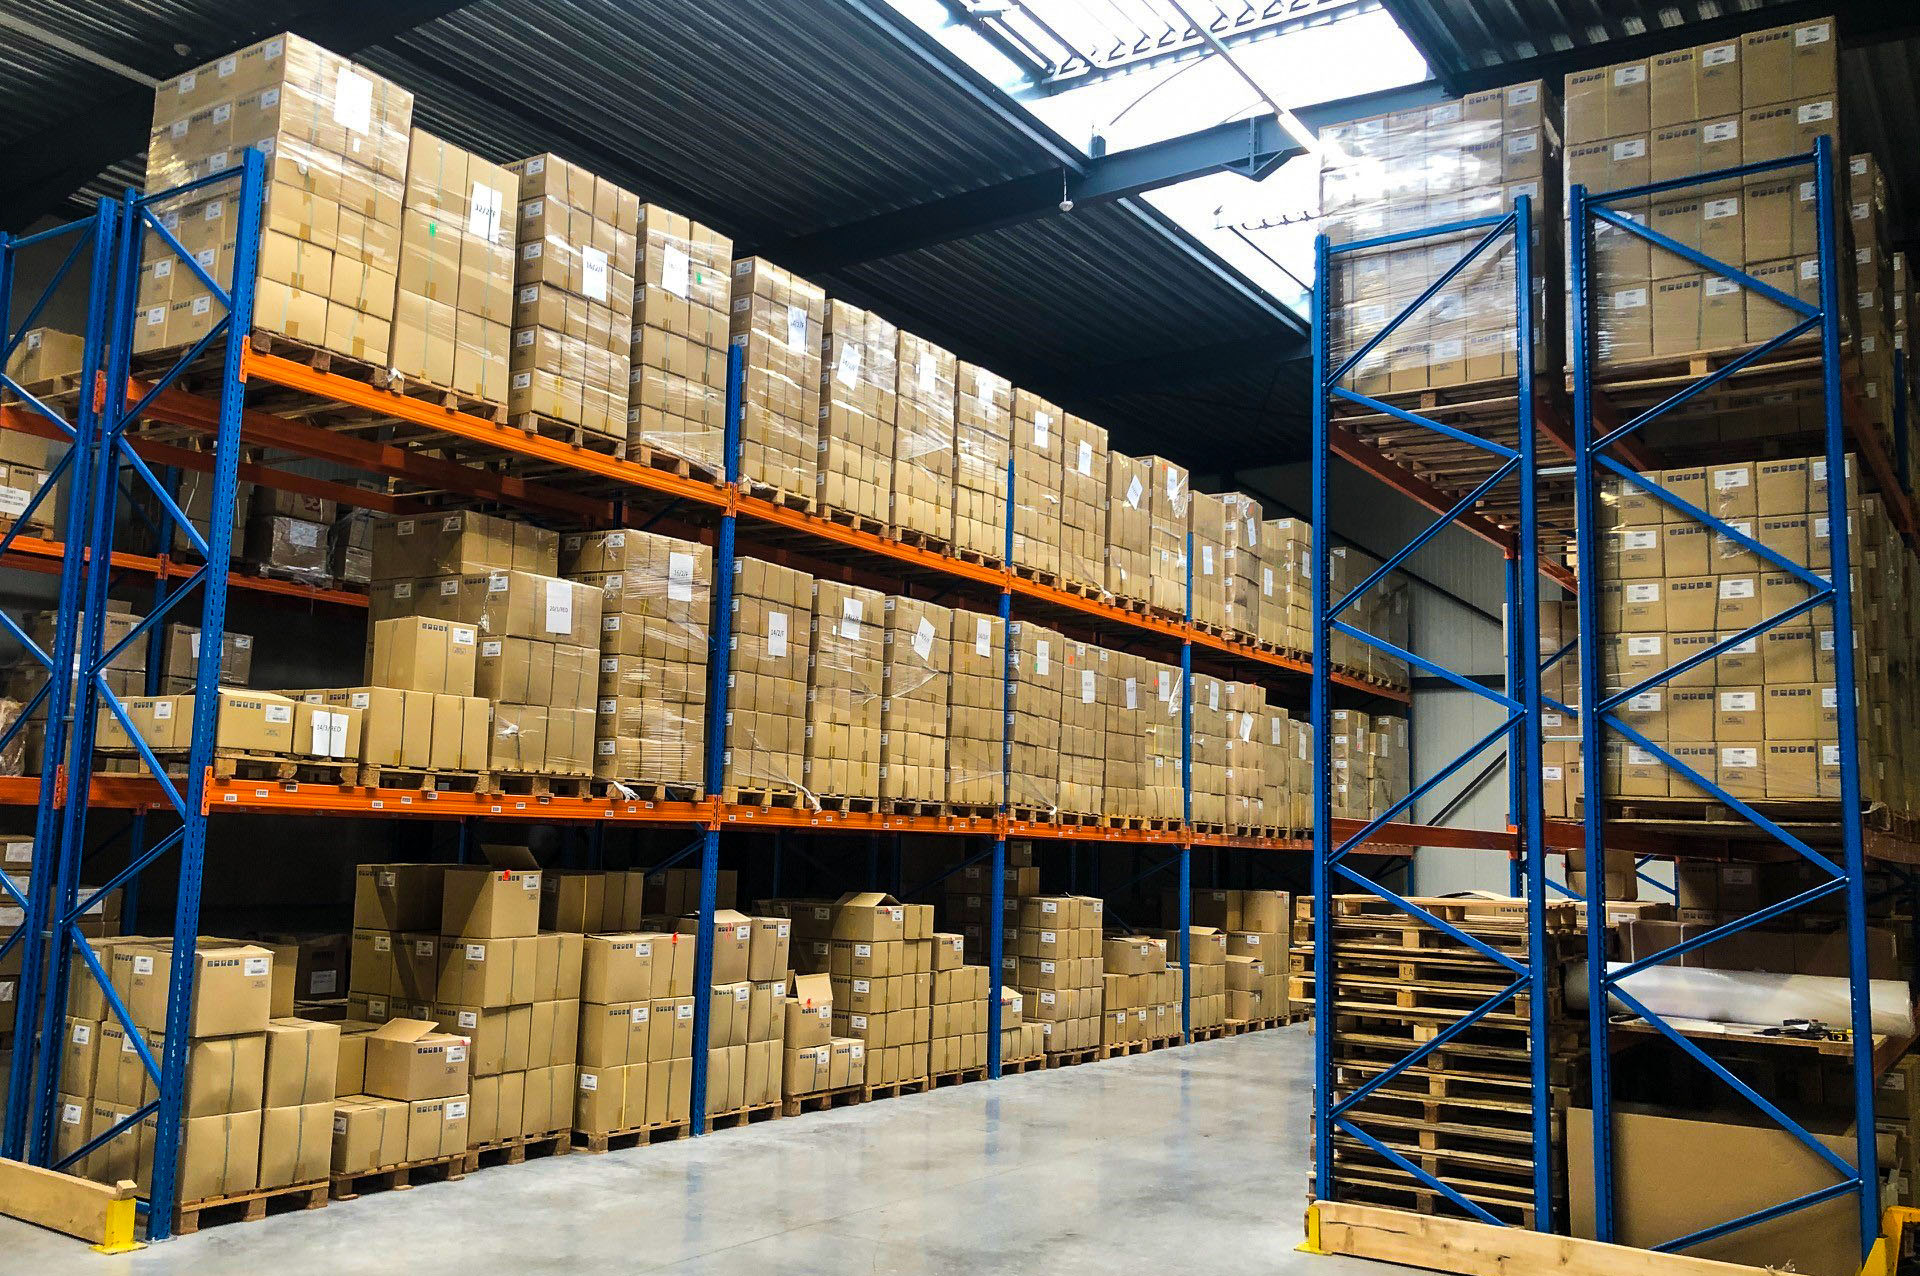 Roeselare Warehouse: manufacturer and provider of textile food packaging